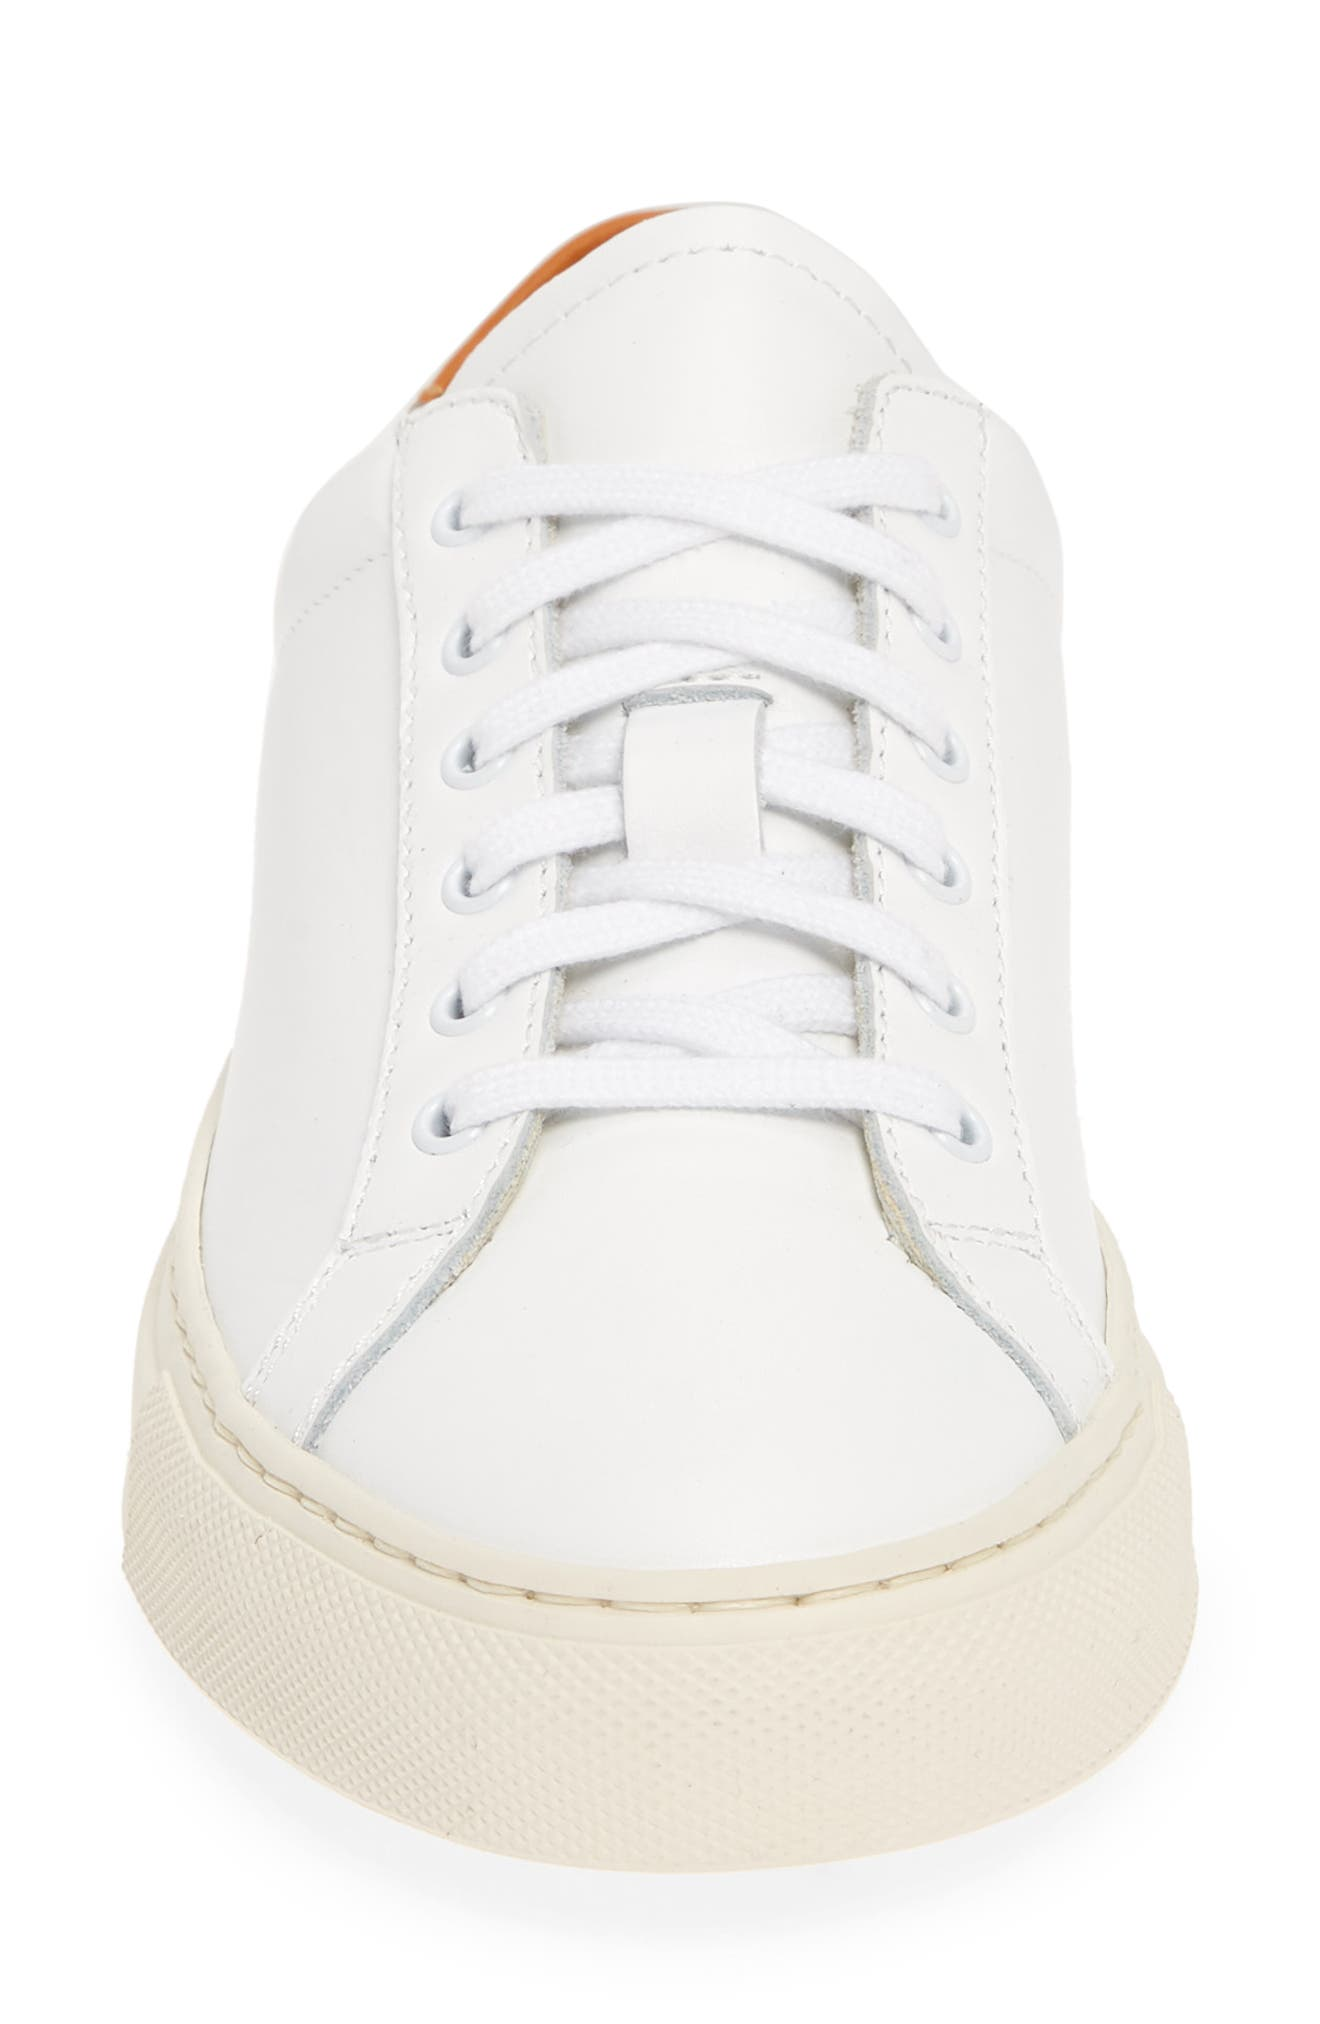 COMMON PROJECTS, Retro Low Top Sneaker, Alternate thumbnail 4, color, WHITE/ BROWN